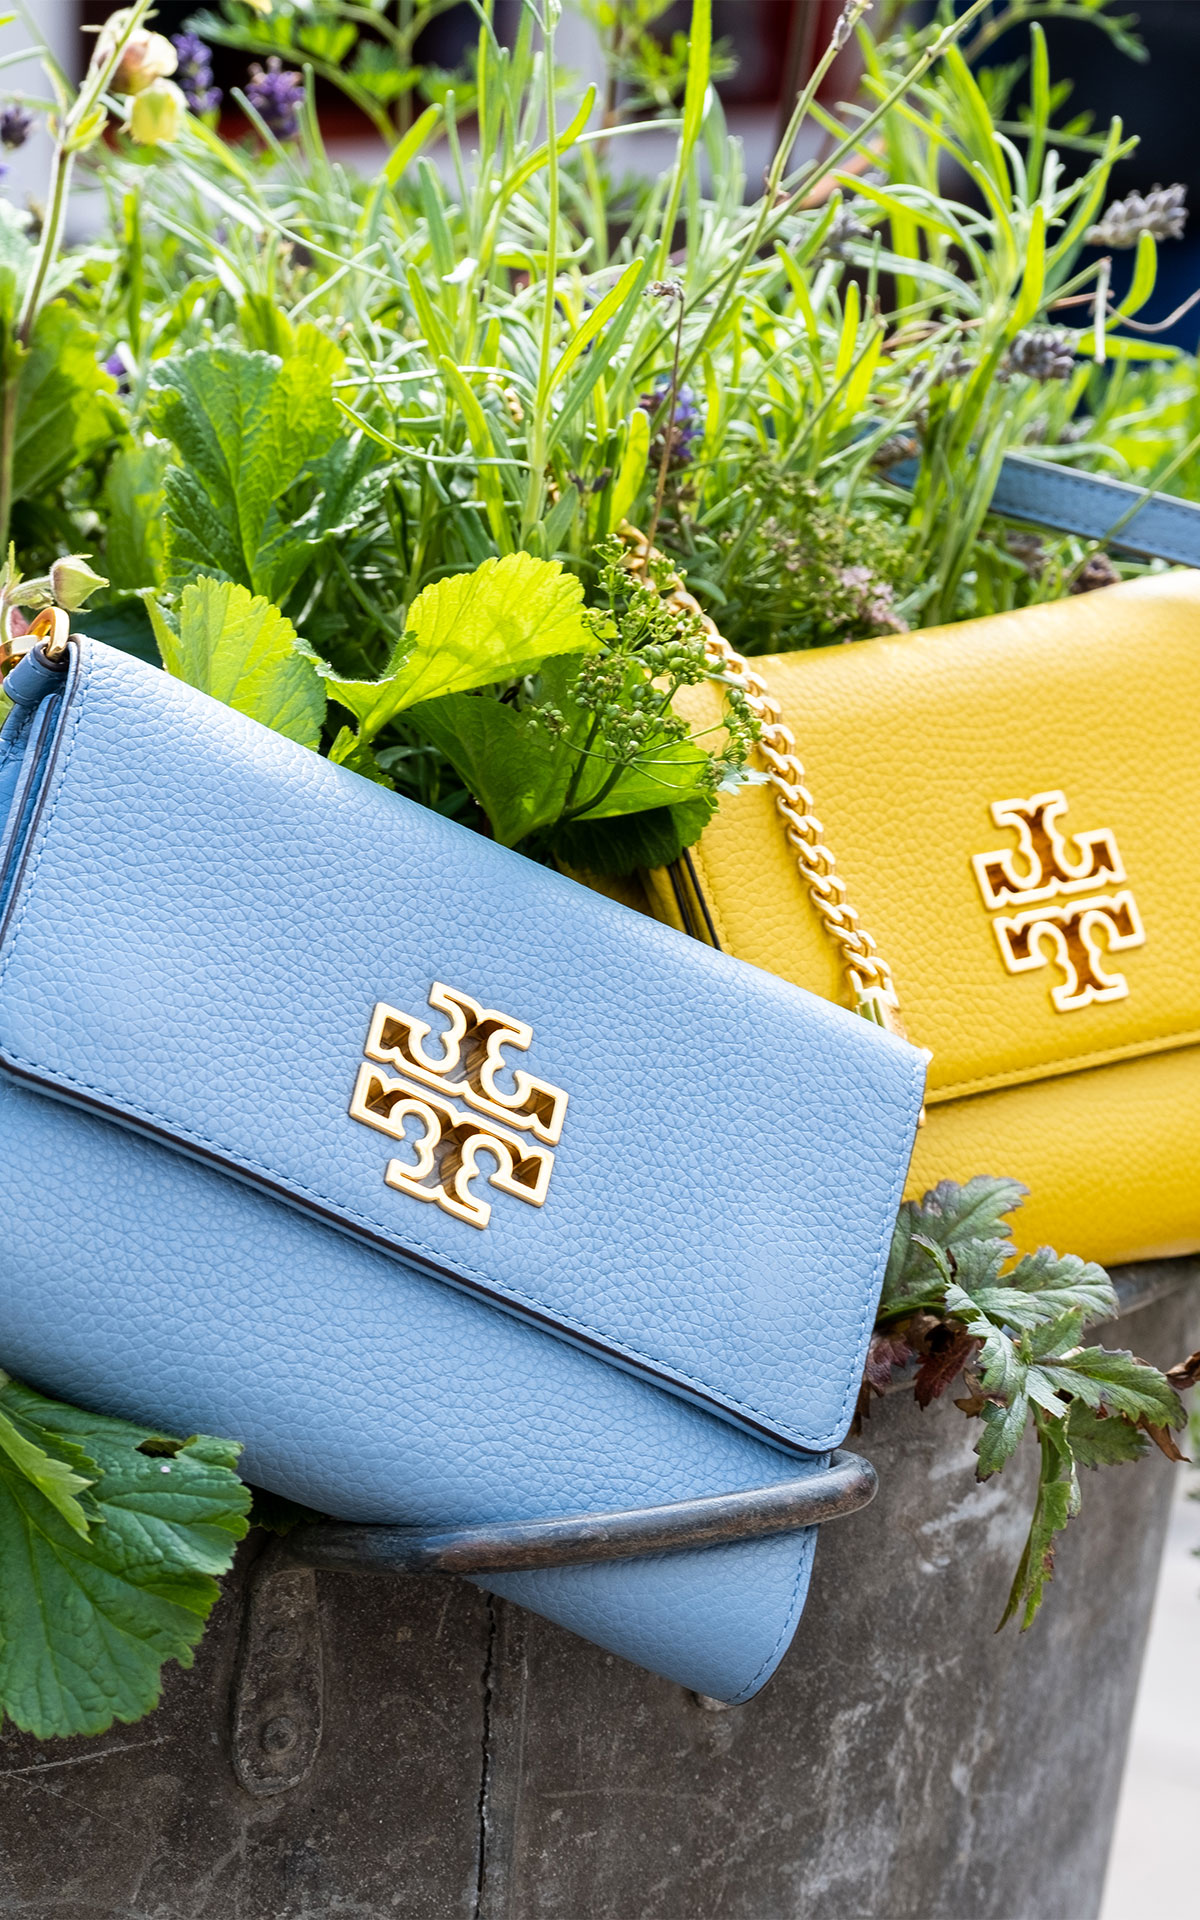 Statement accessories Tory Burch bags at Bicester Village